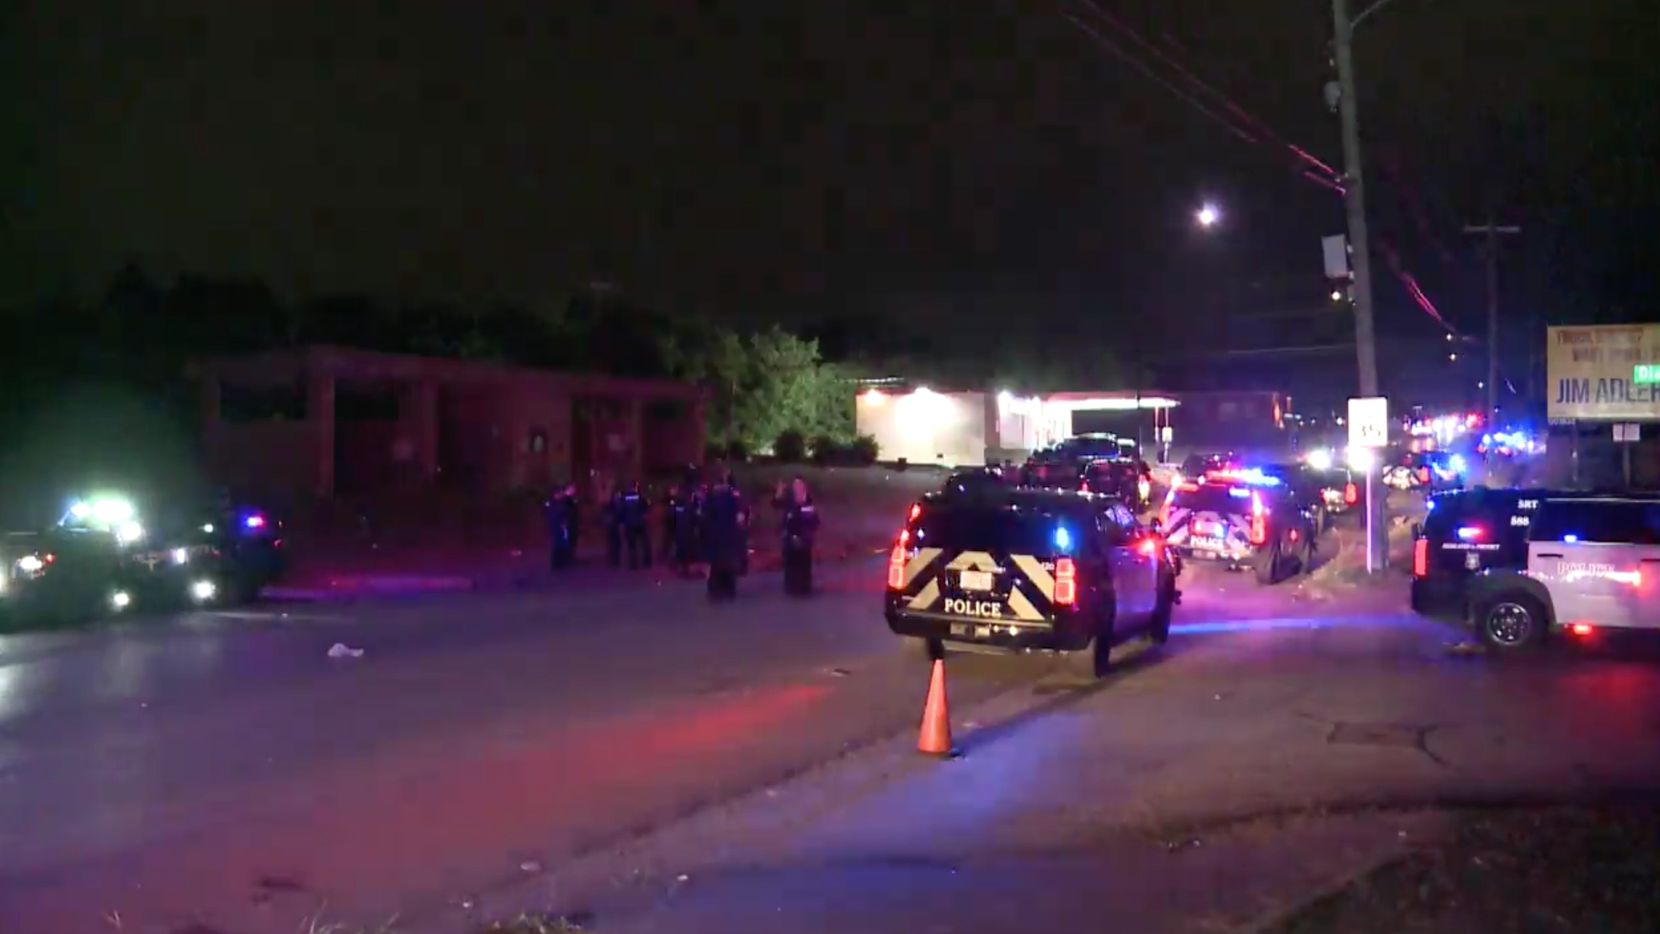 Eight people were wounded in a shooting at a Fort Worth car wash 3400 block of Horne Street, southwest of downtown Fort Worth, around 1:30 a.m. on July 4, 2021.